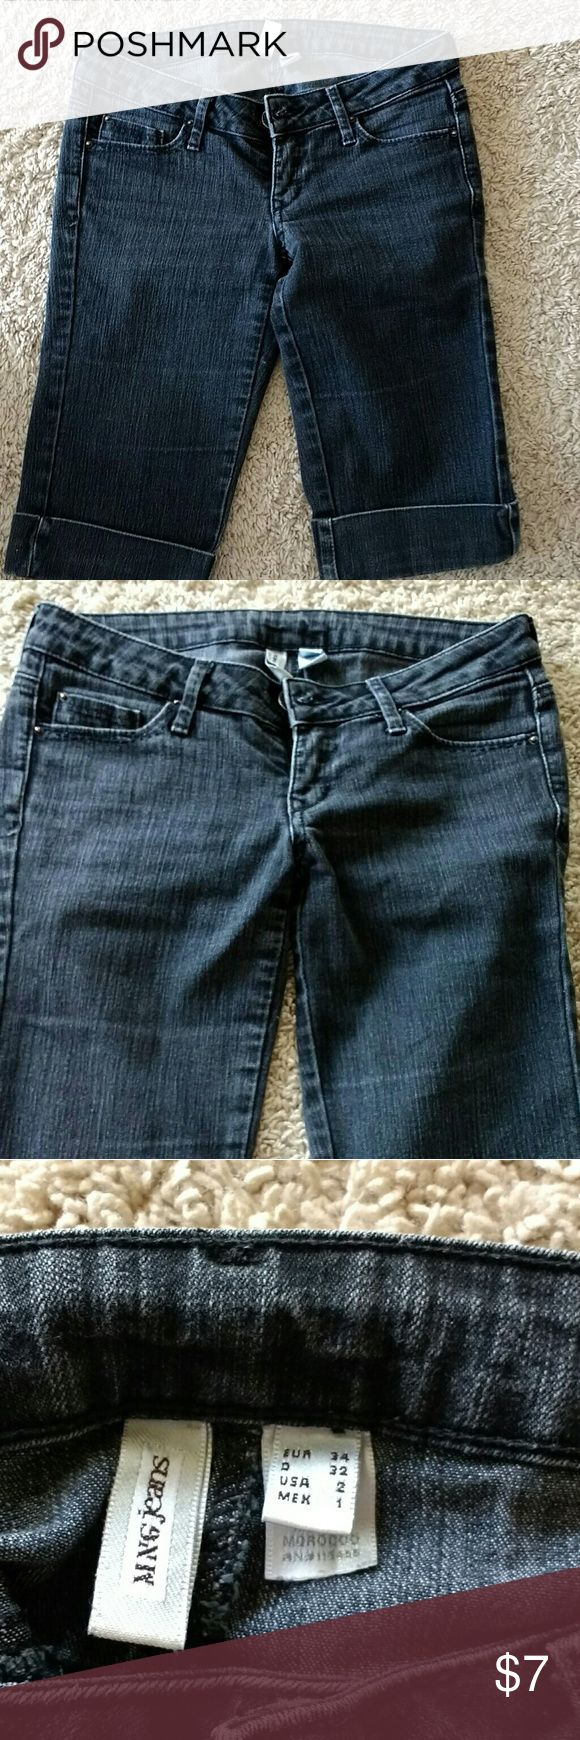 Black faded MNG jeans shorts size 0 Black faded jeans shorts Brand Mango Jeans Size stated US 2 but fits smaller - US 0 No stains, holes or discoloration Knee length skinny shorts Mango Shorts Jean Shorts